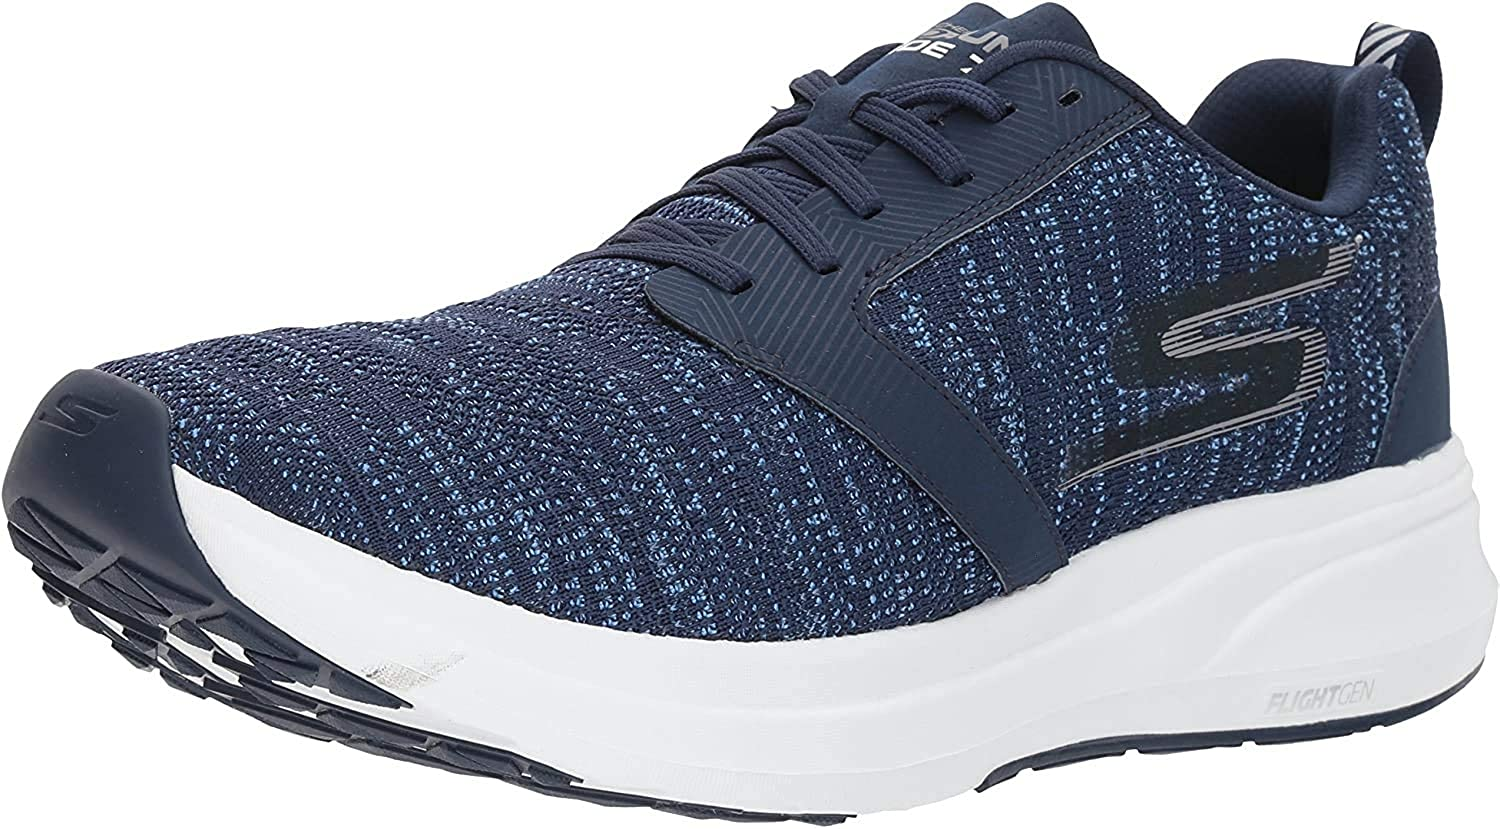 Skechers Men's Go Run Ride 7 Shoe Navy